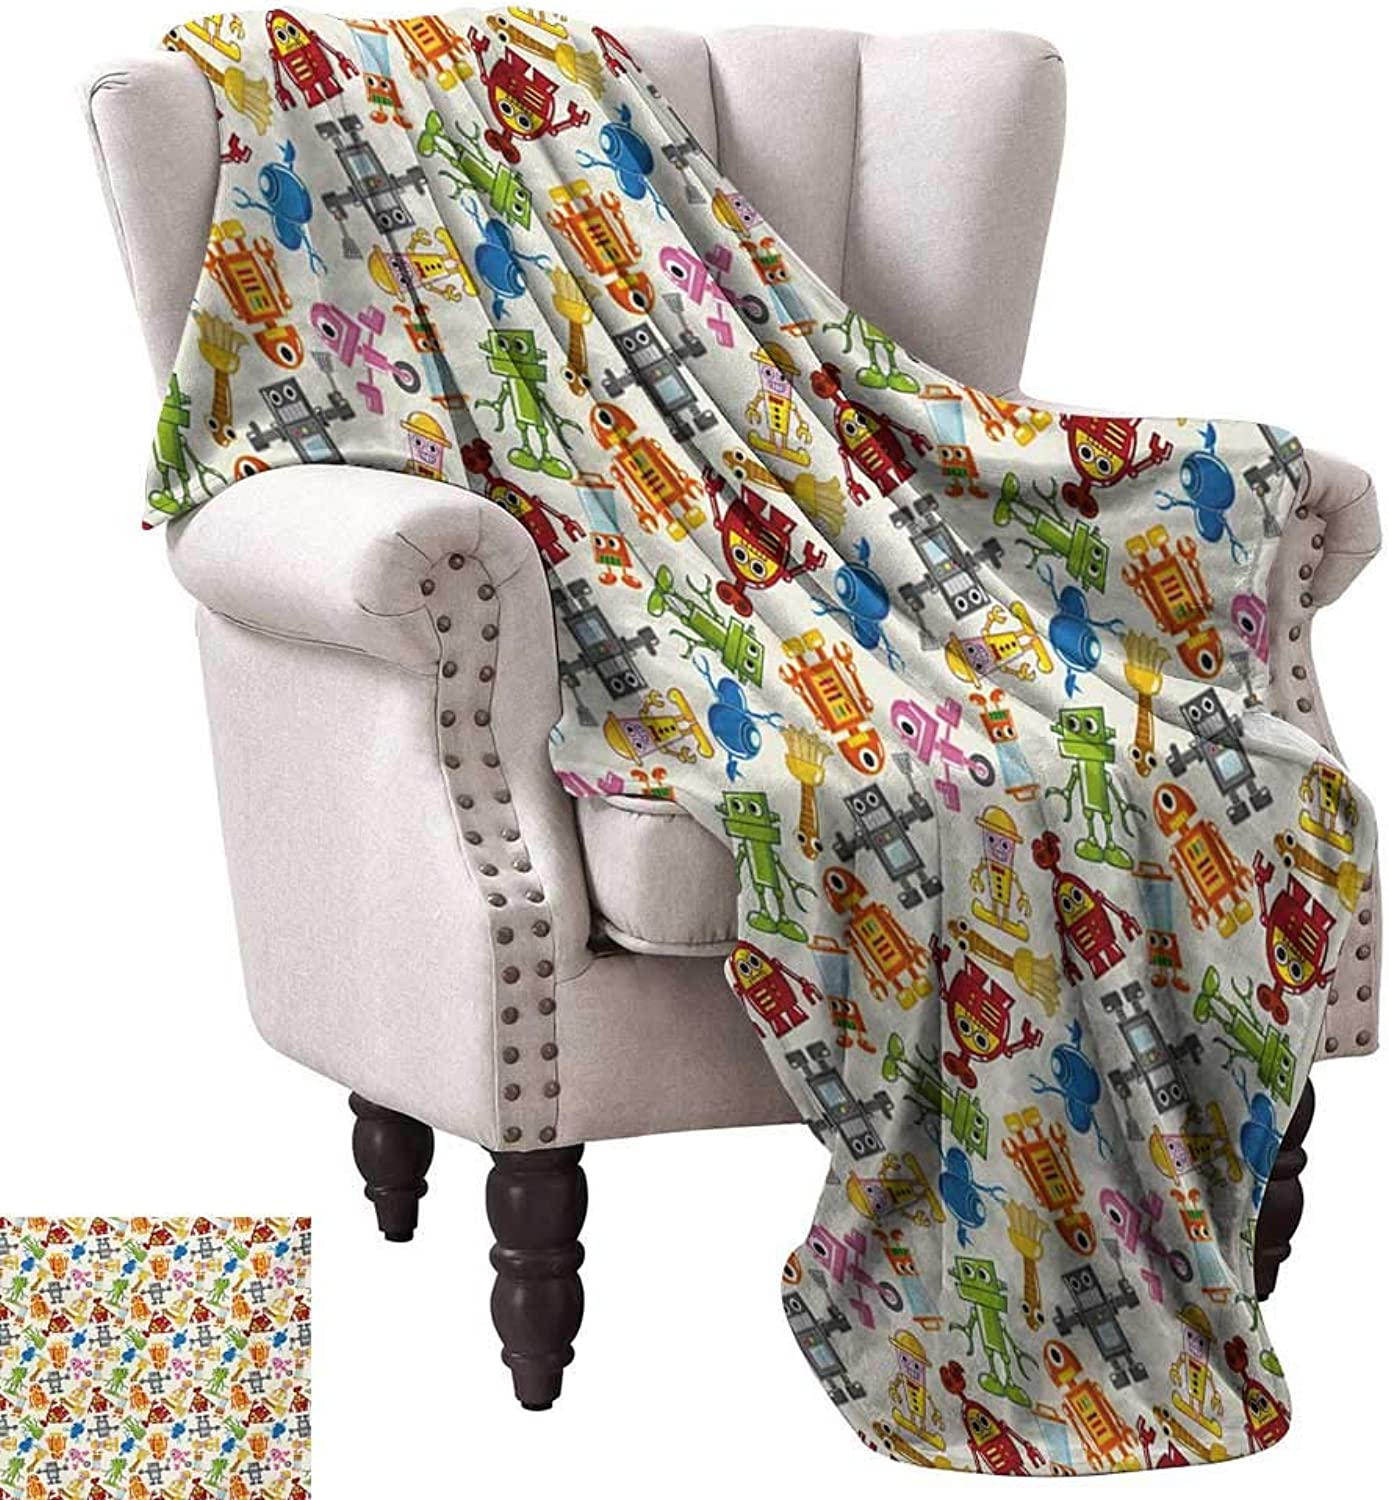 Anyangeight Weave Pattern Extra Long Blanket,colorful Cartoon Robot Collection Boys Nursery Theme Futuristic Fantastic Science Toys 60 x50 ,Super Soft and Comfortable,Suitable for Sofas,Chairs,beds